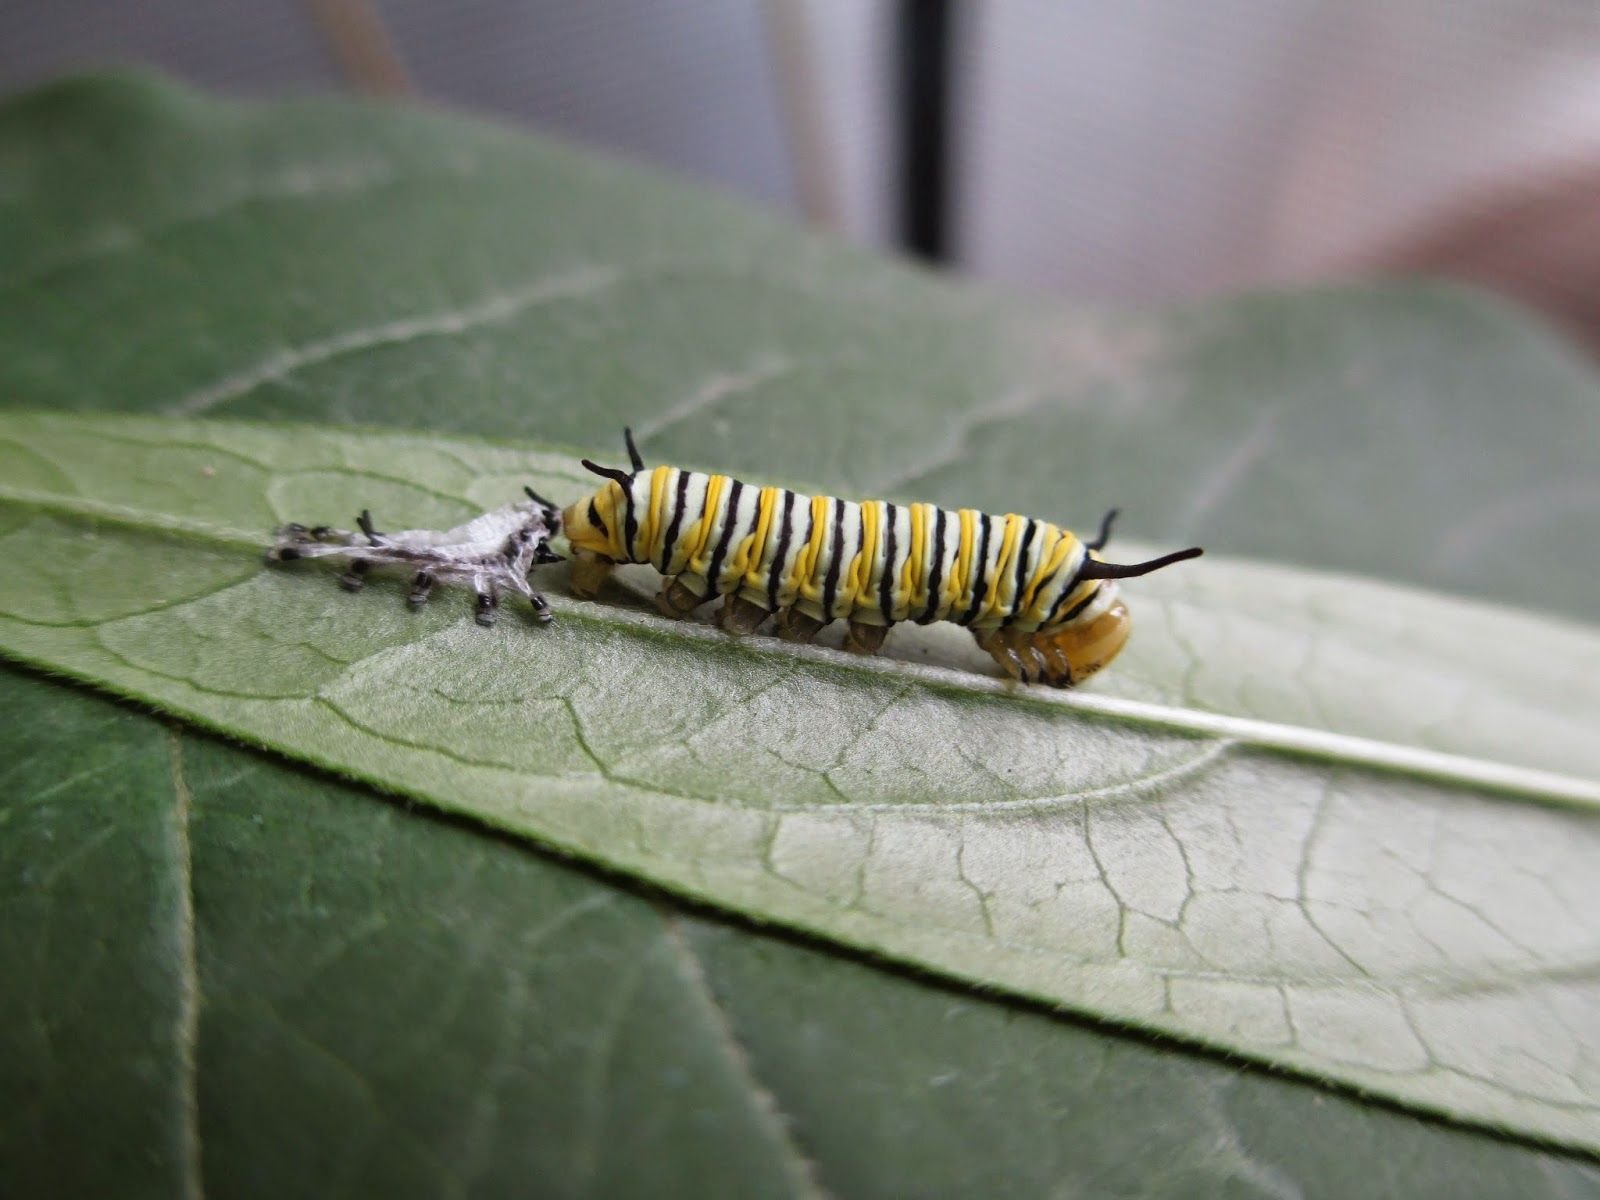 Caterpillar entering third instar